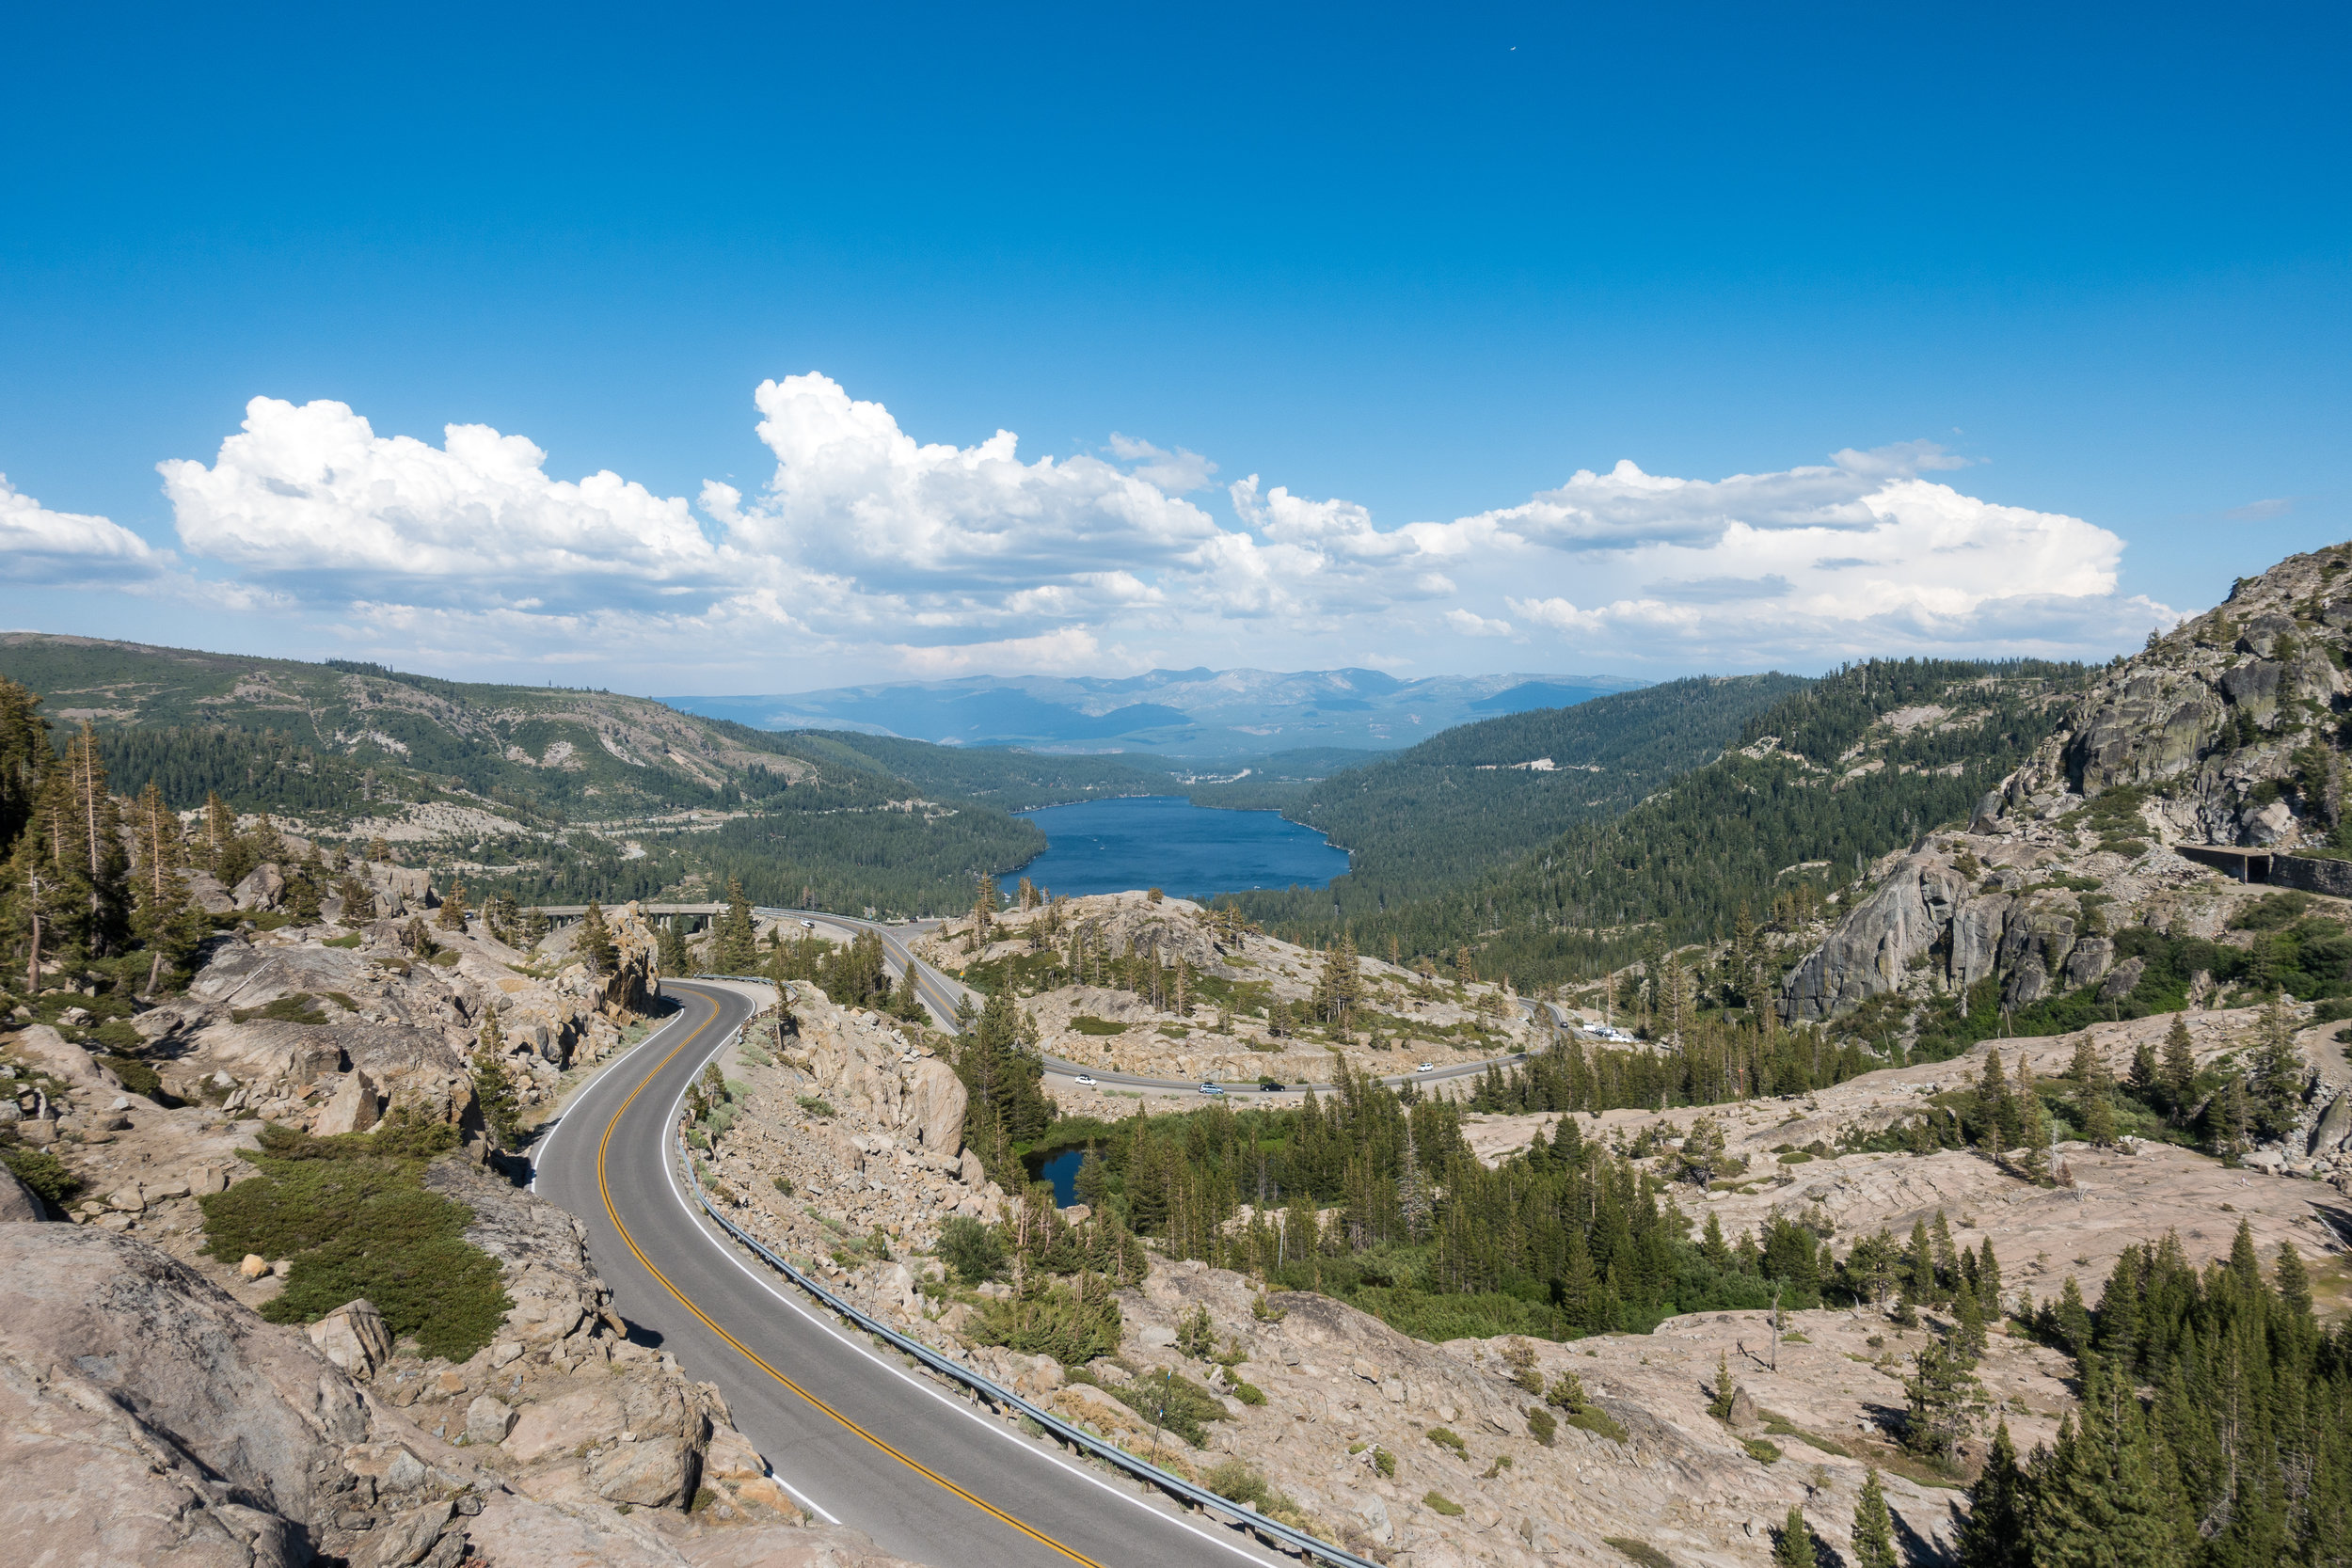 The highway at Donner Pass.